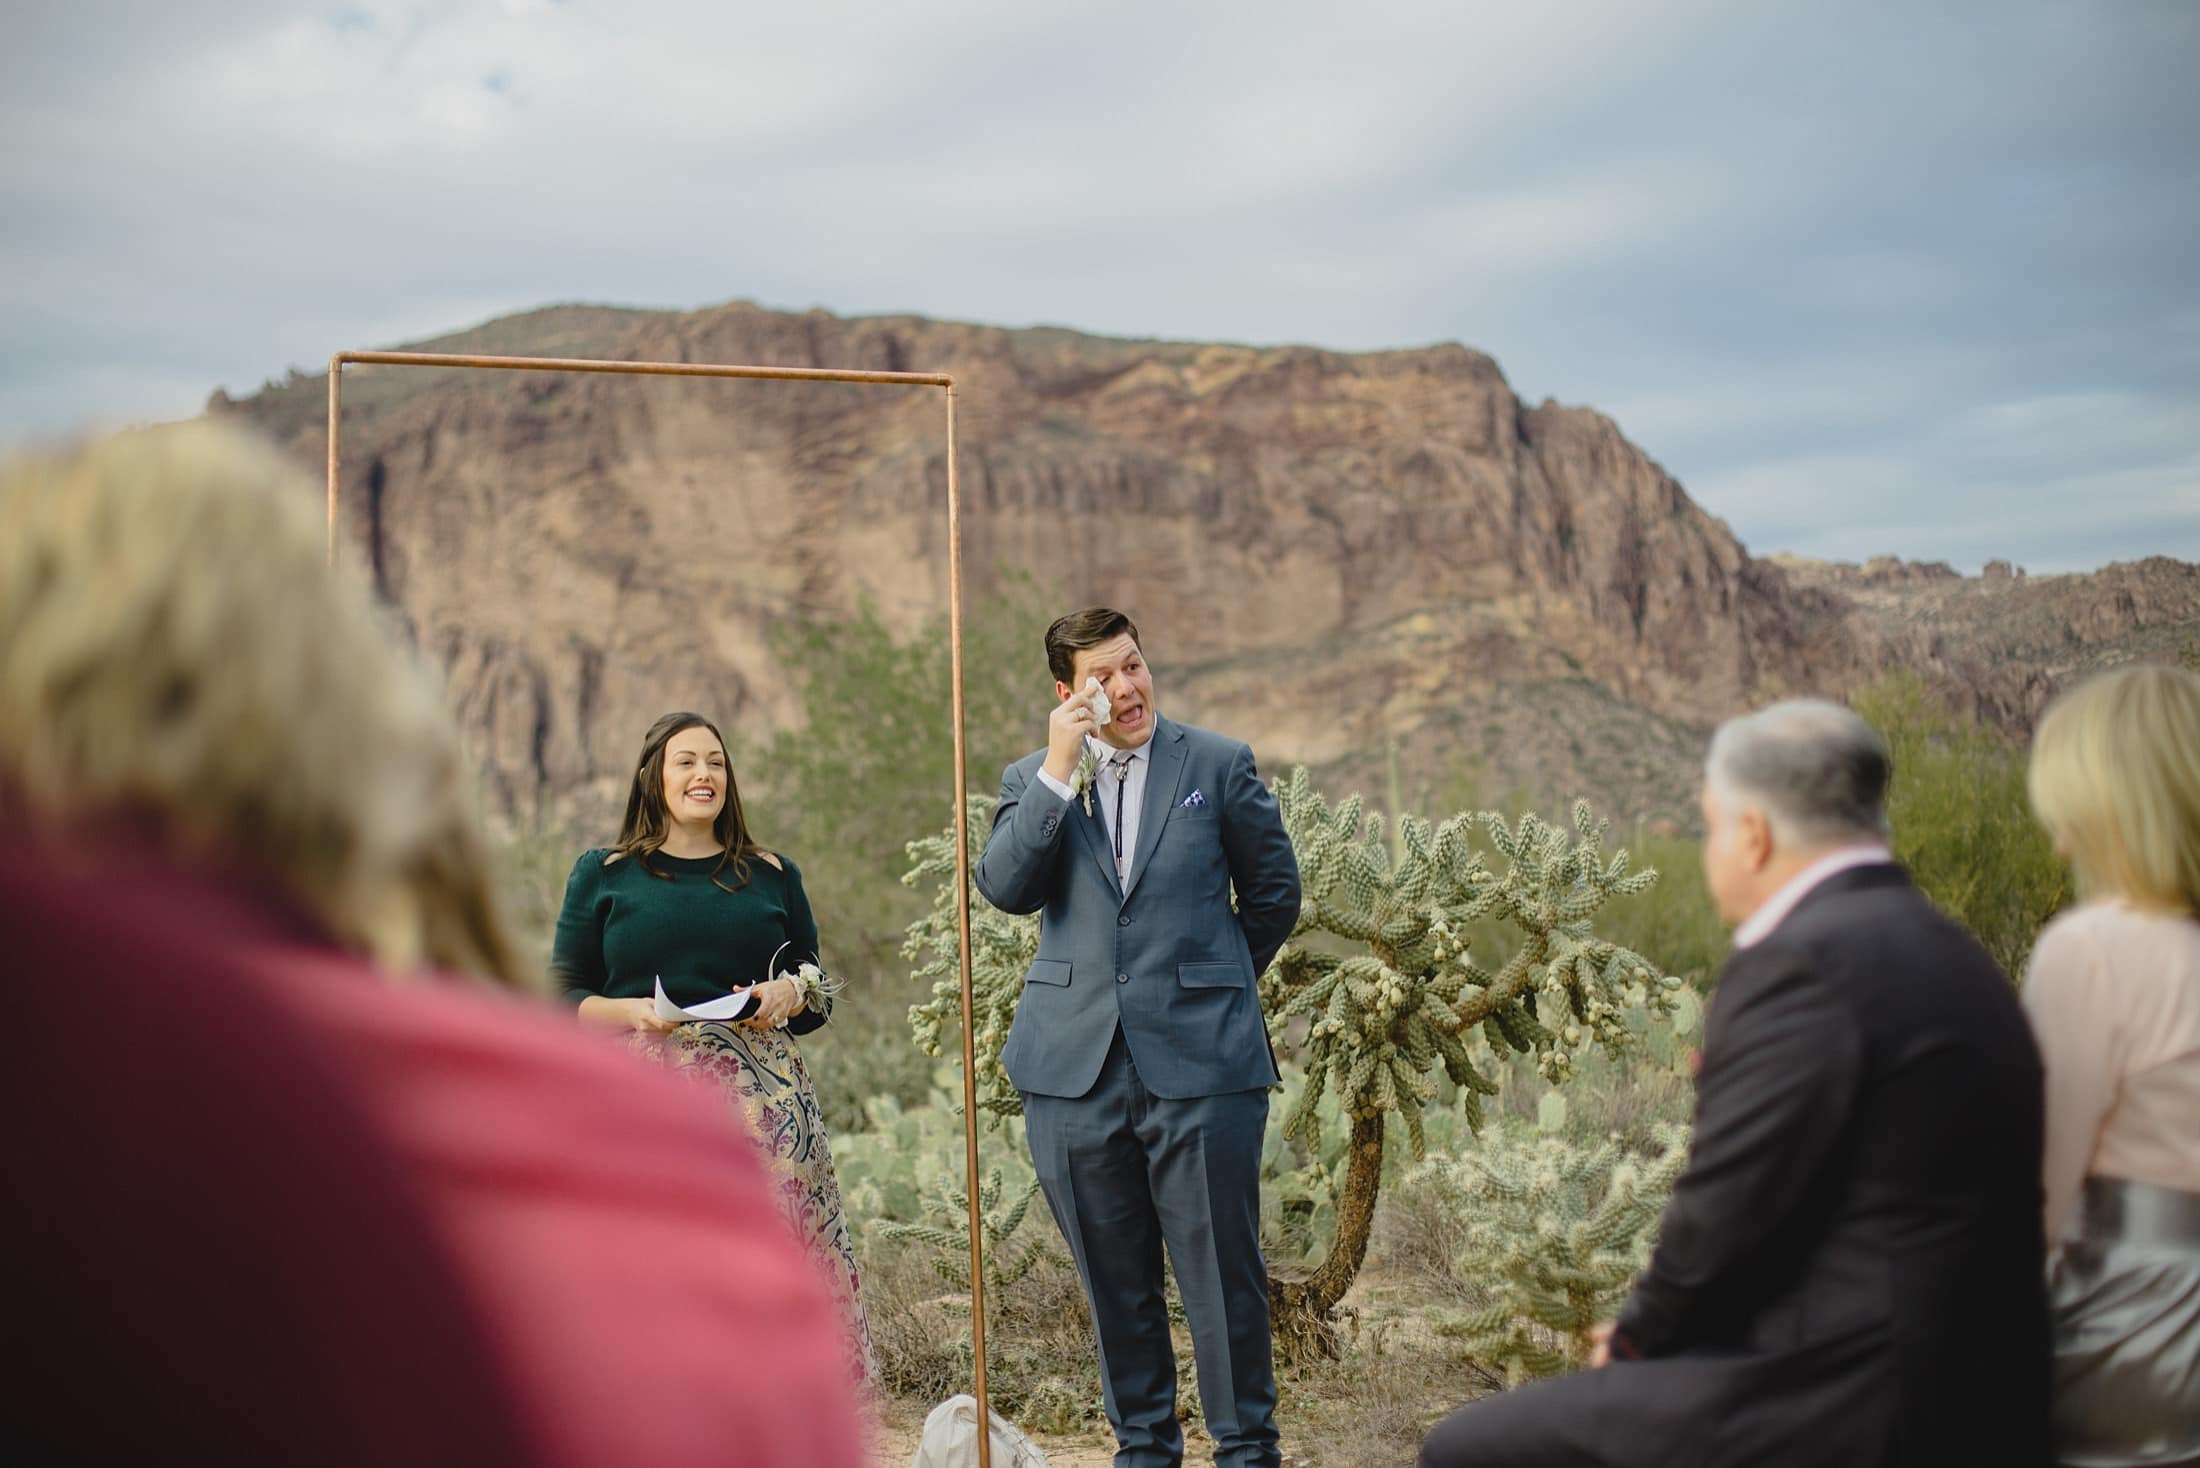 emotional groom seeing bride for first time down aisle in Arizona desert wedding